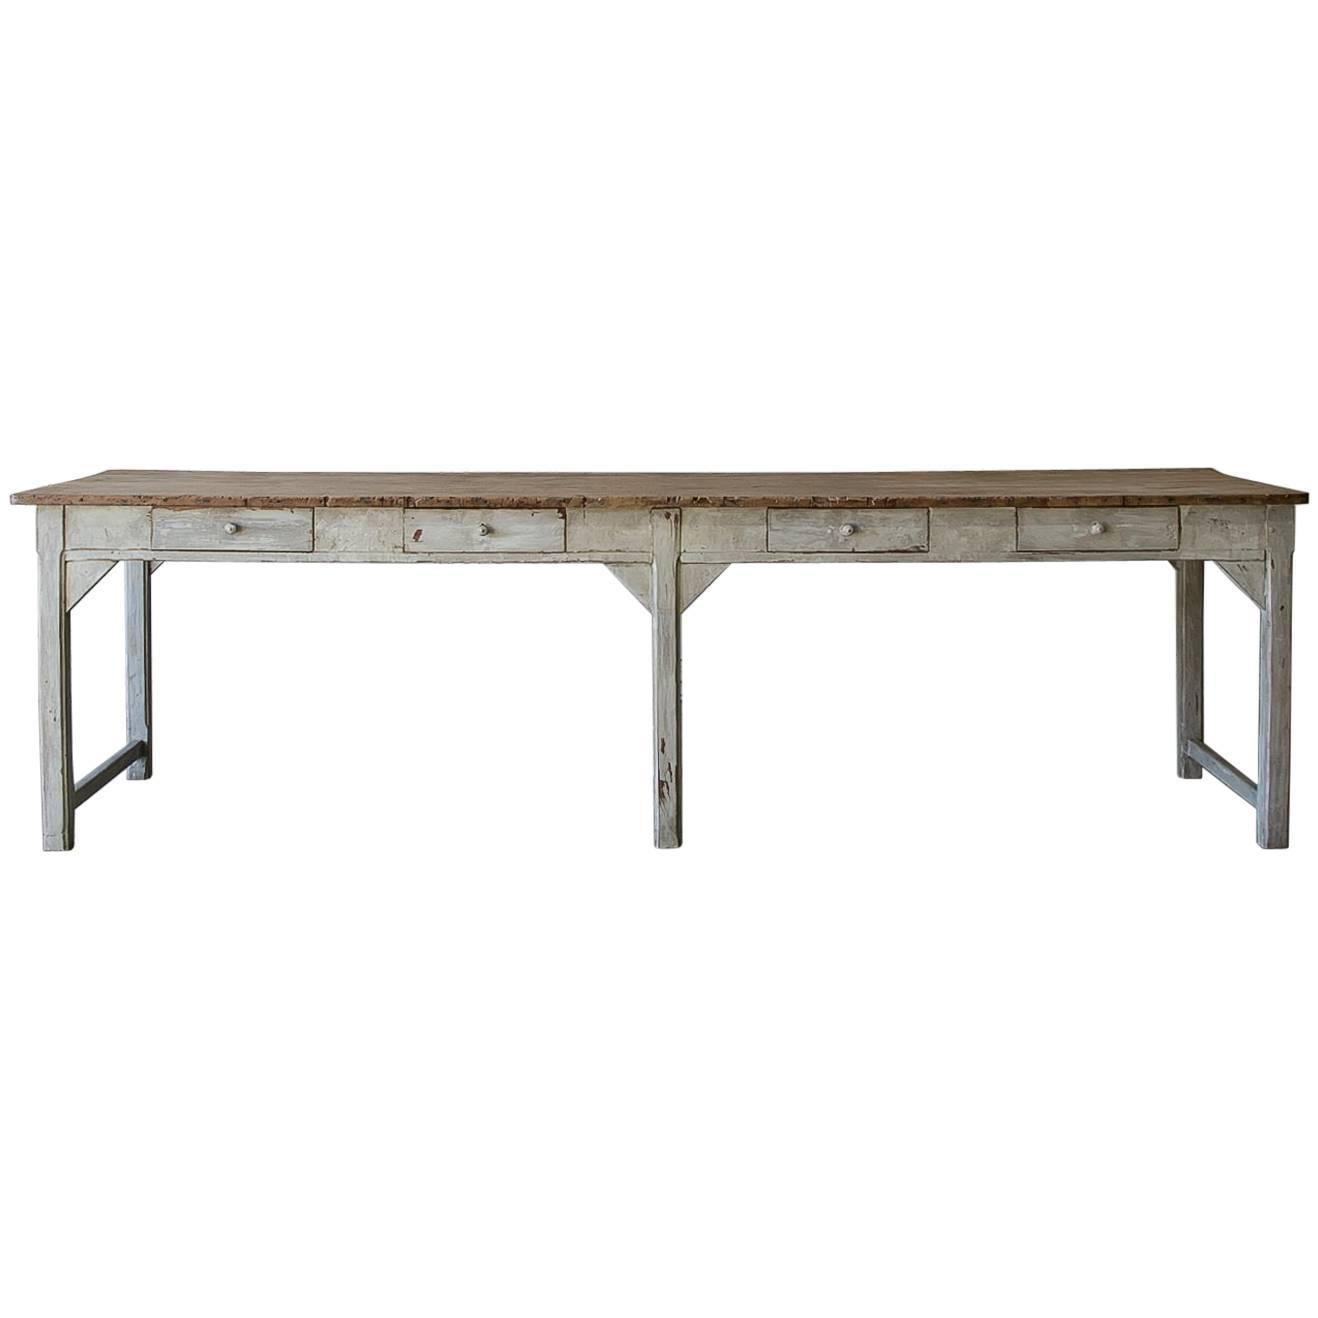 Antique French Workshop Table At 1stdibs